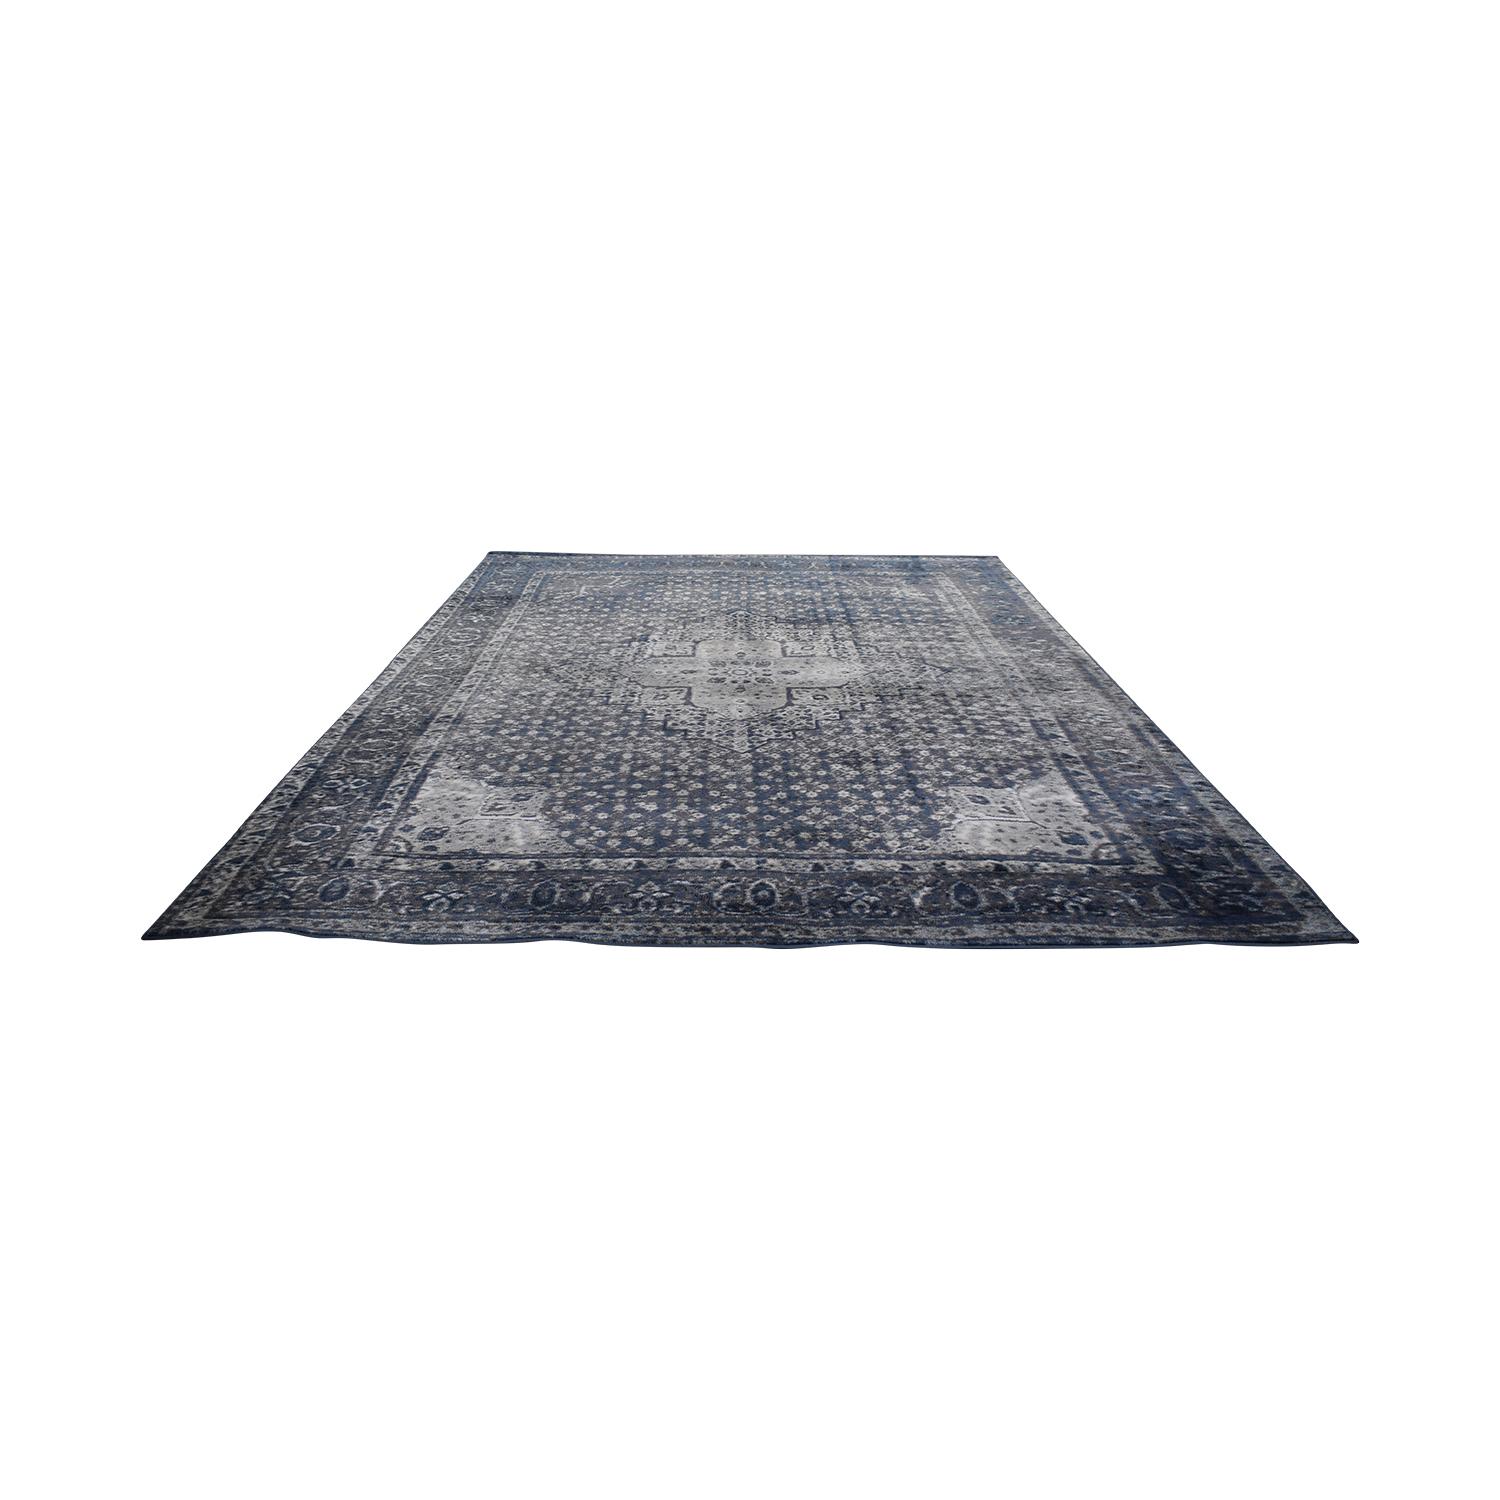 NuLoom Nuloom Traces Large Blue and Grey Area Rug dimensions